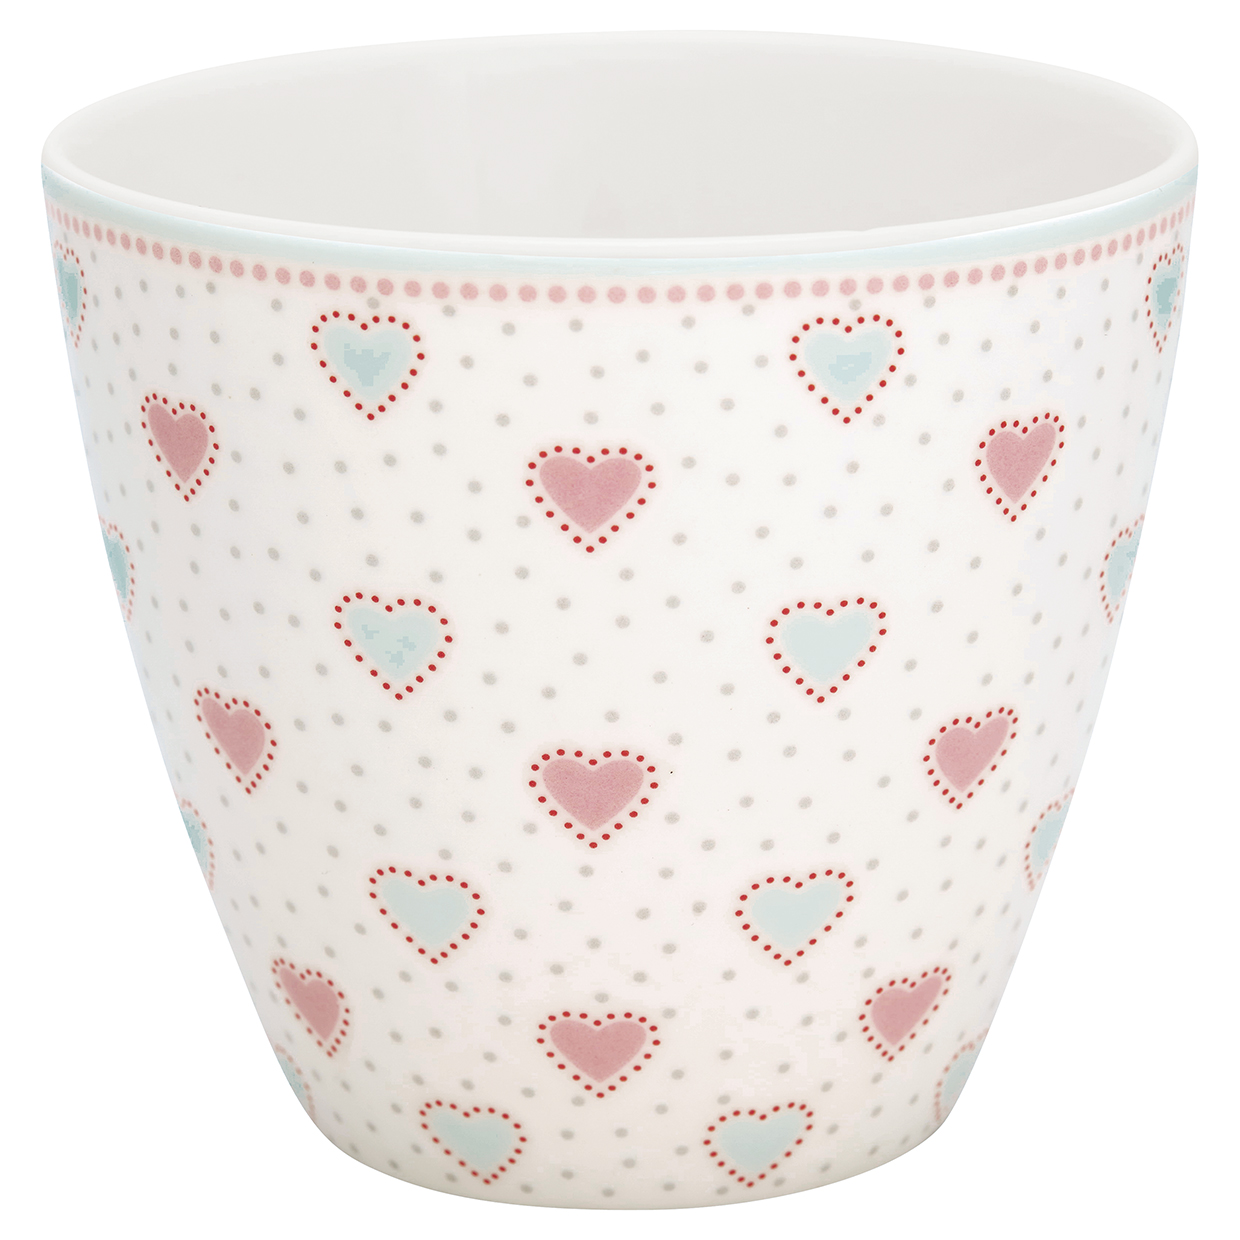 Latte Cup - Penny white - Greengate